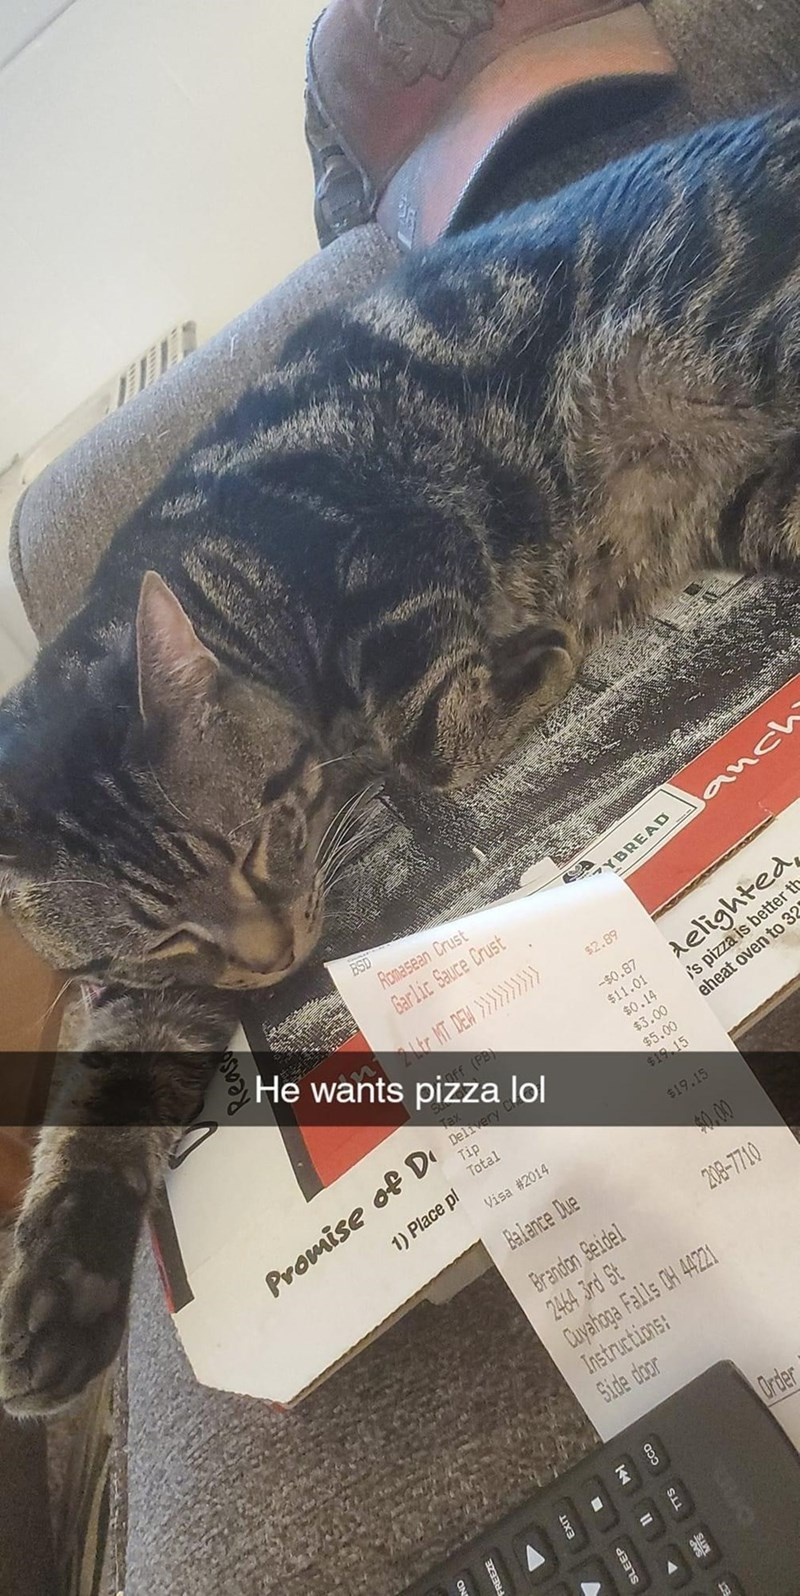 Cat - Romasean Crust anch Garlic Sauce Crust He wants pizza lol YBREAD MT DEM >>> $2.89 delighted, i's pizza is better th eheat oven to 32 off (PE) -$0.87 $11.01 $0.14 Tax Delivery C Tip Total $3.00 $5.00 Promise of D $19 15 1) Place pl Visa #2014 $19.15 Balance Due 0.00 Brandon Seidel 2464 3rd St 208-7710 Duyahoga Falls OH 4421 Instructions: Side door Order Reas EXIT SLEEP TTS